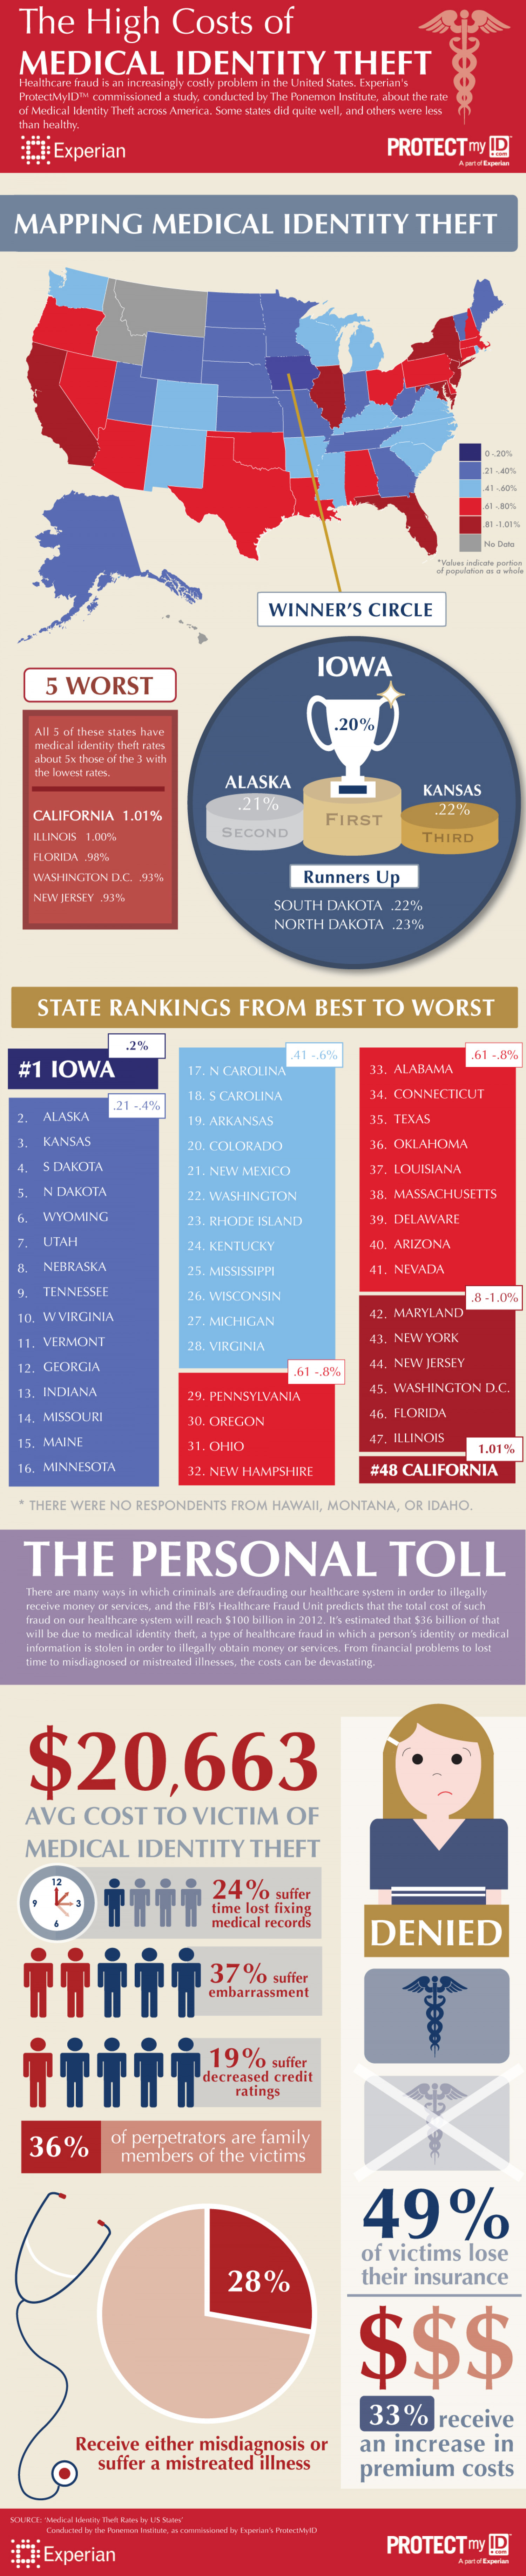 Medical Identity Theft Rates in America Infographic